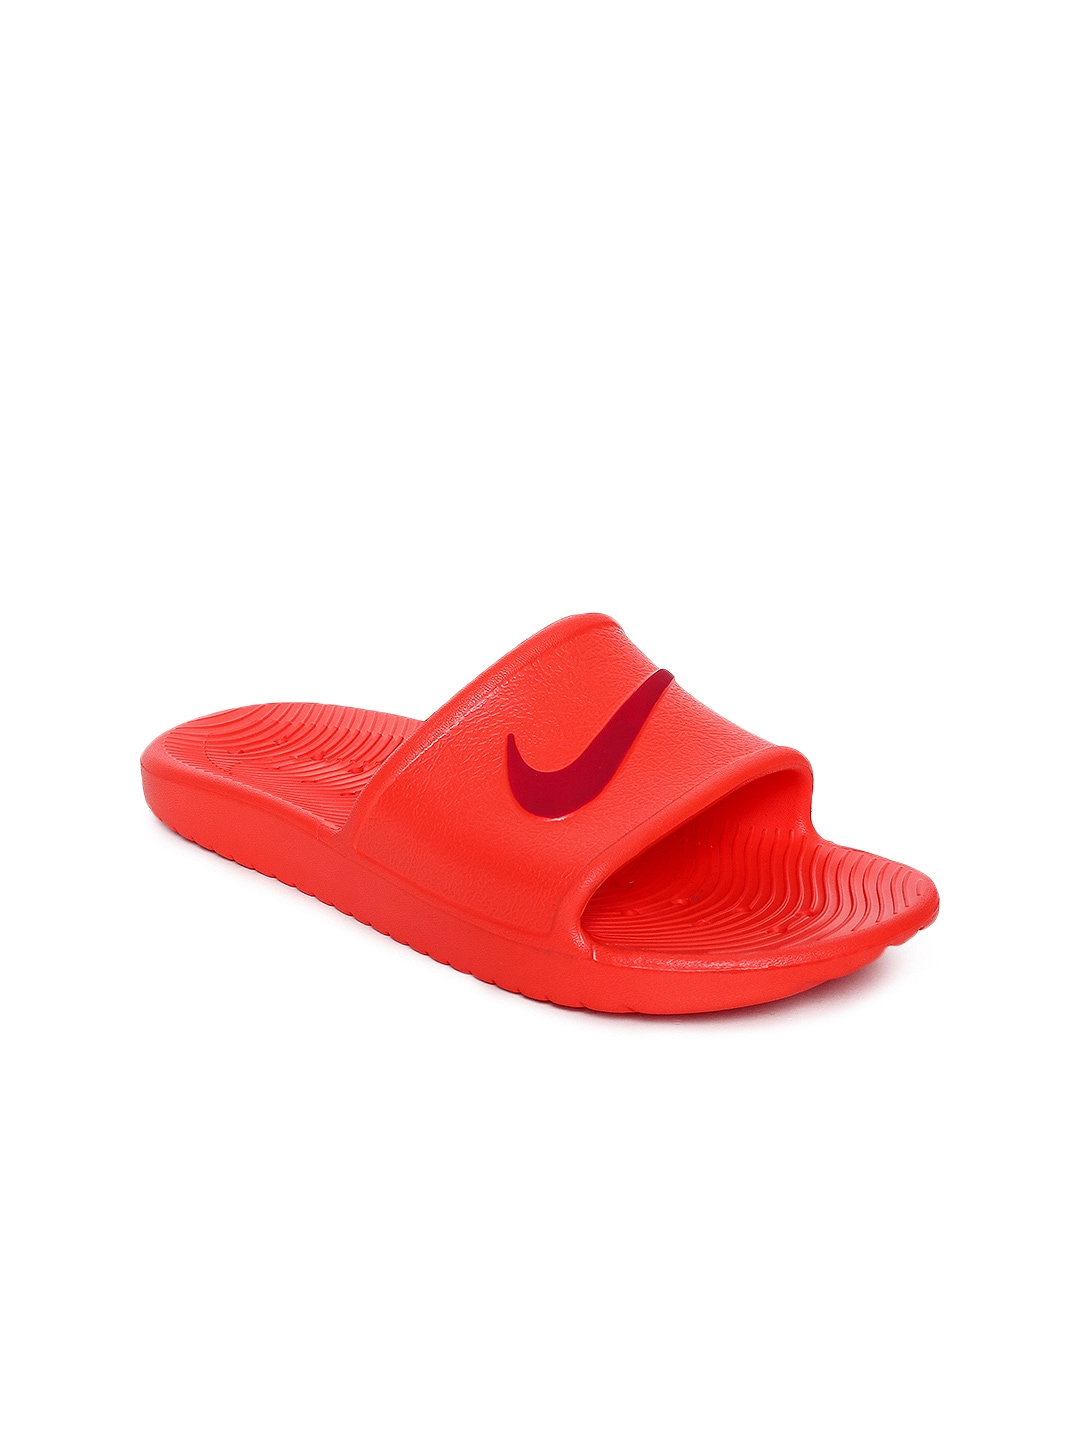 84ddd7c93 Women s Nike Flip Flops - Buy Nike Flip Flops for Women Online in India